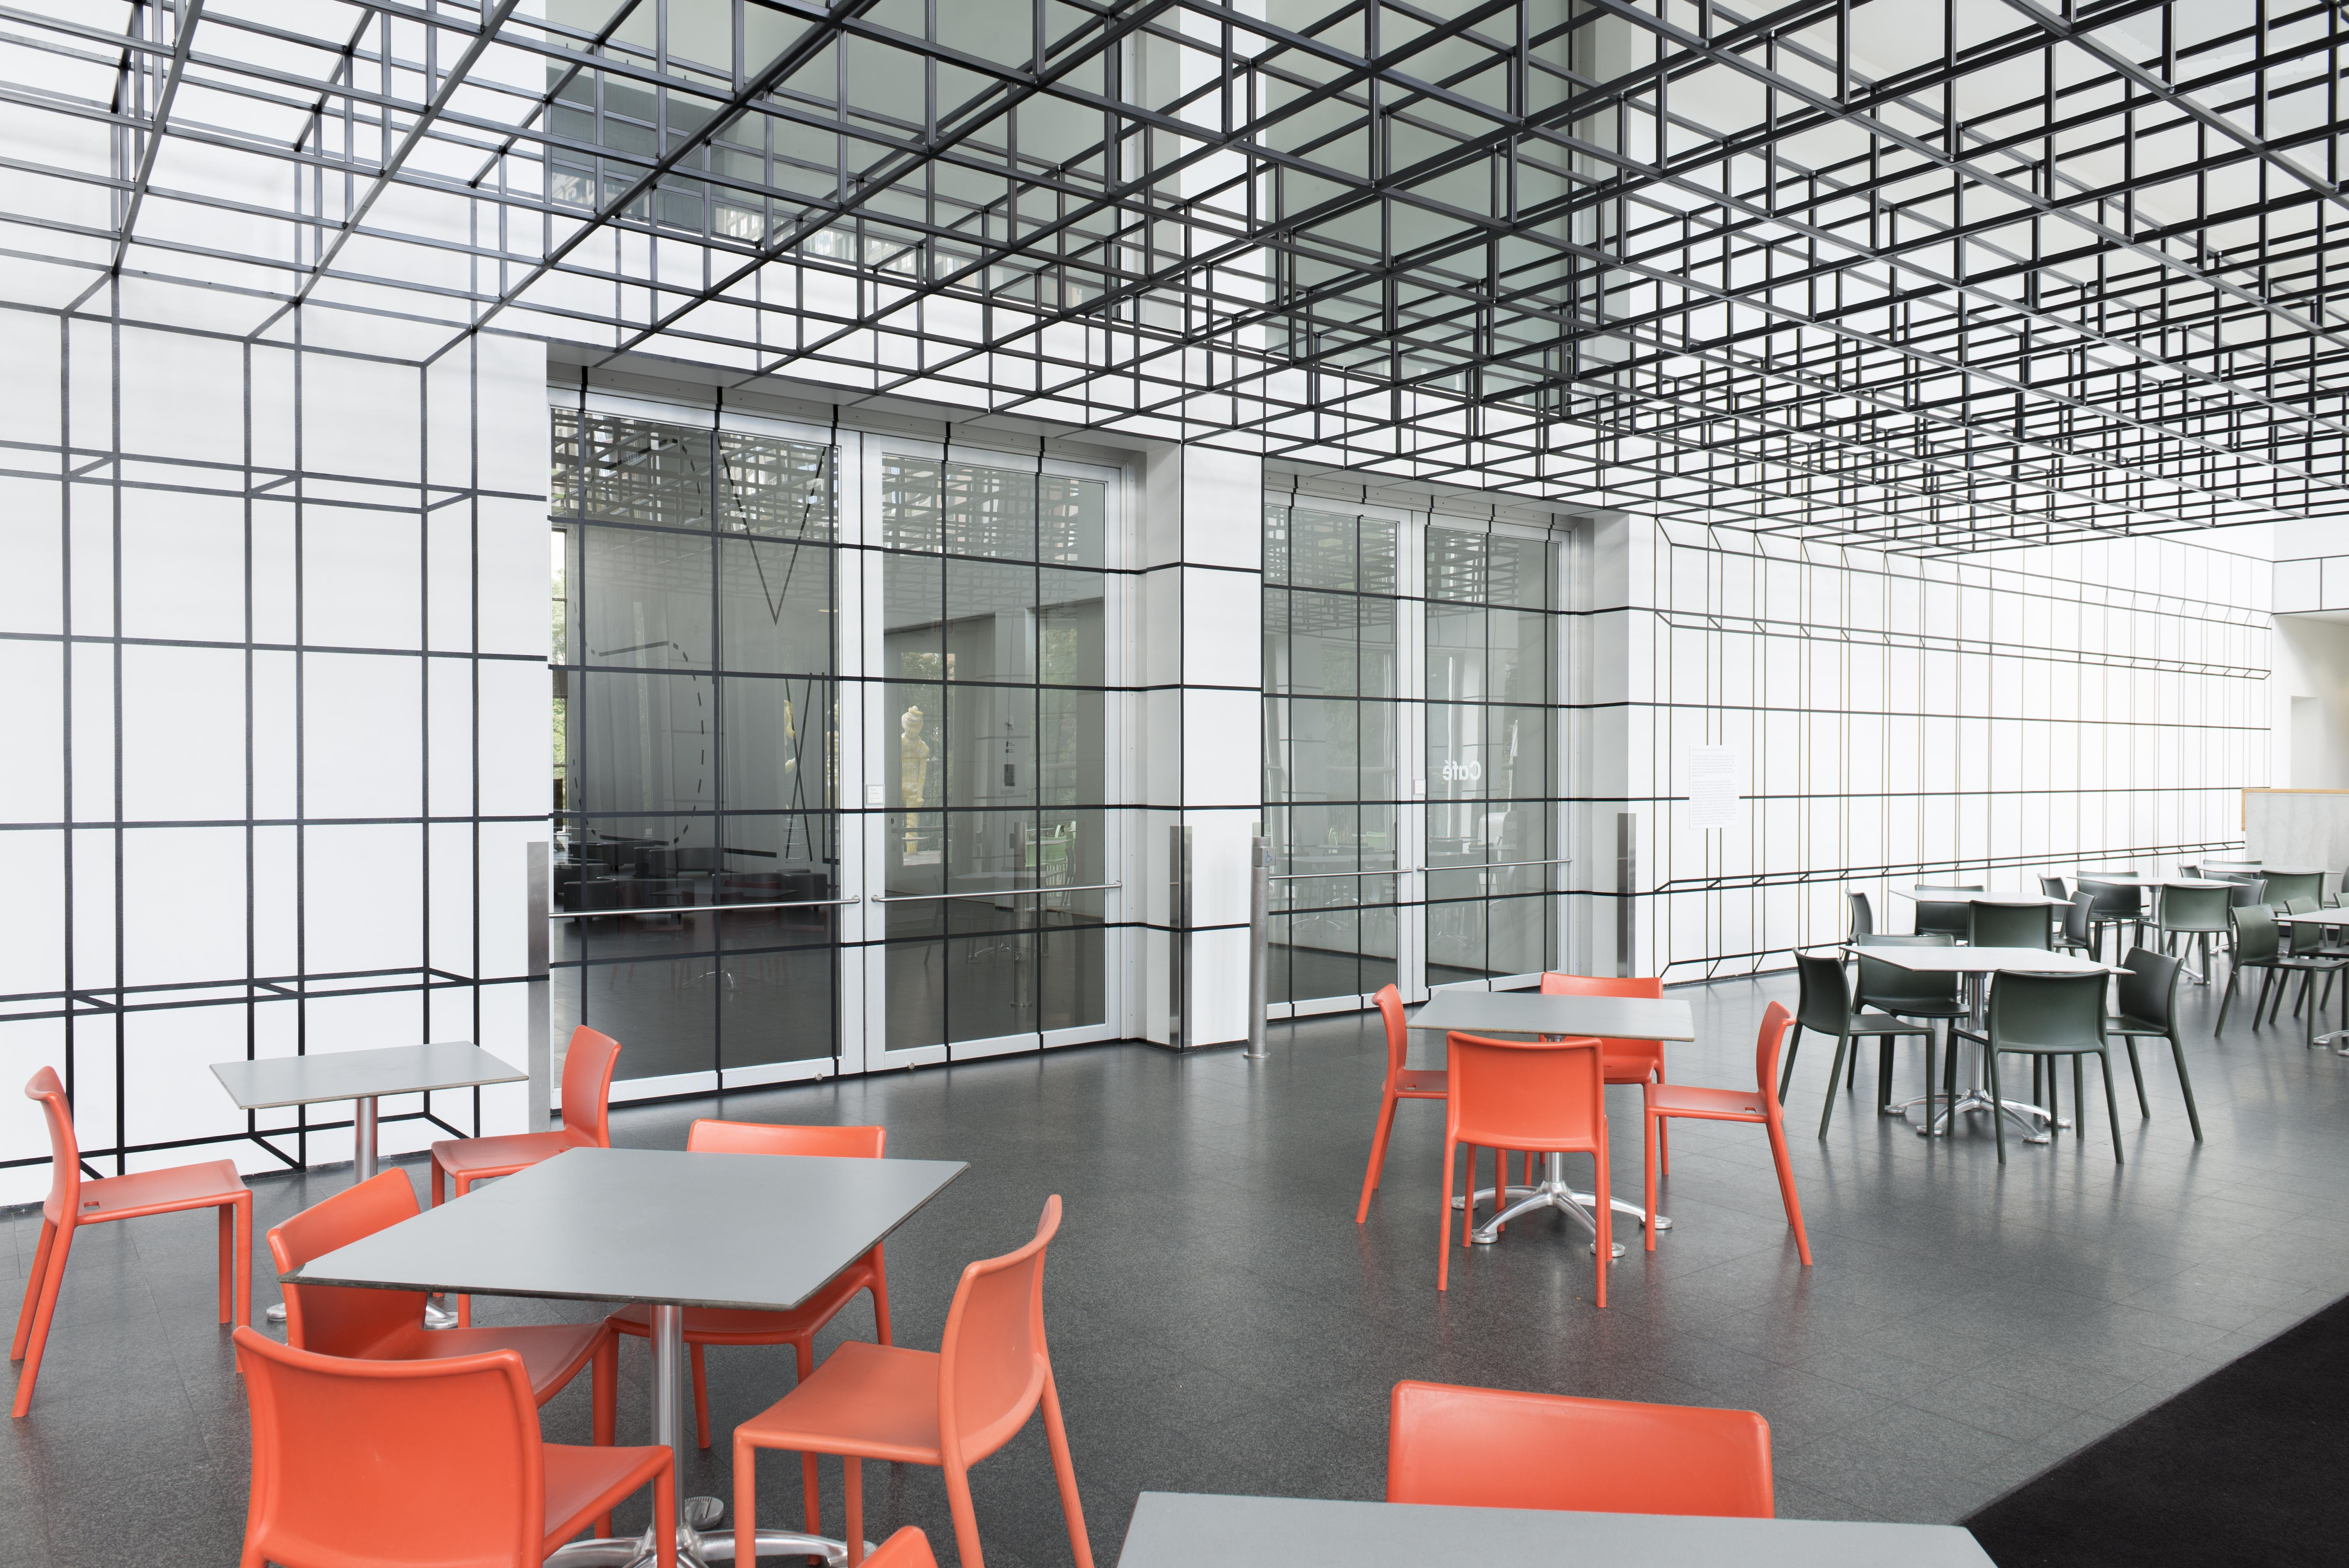 MCA Cafe with chairs and tables and a ceiling plane made of grey, open-sided cubes that semlessly transitions into a grid of illusionistic cubes on the wall